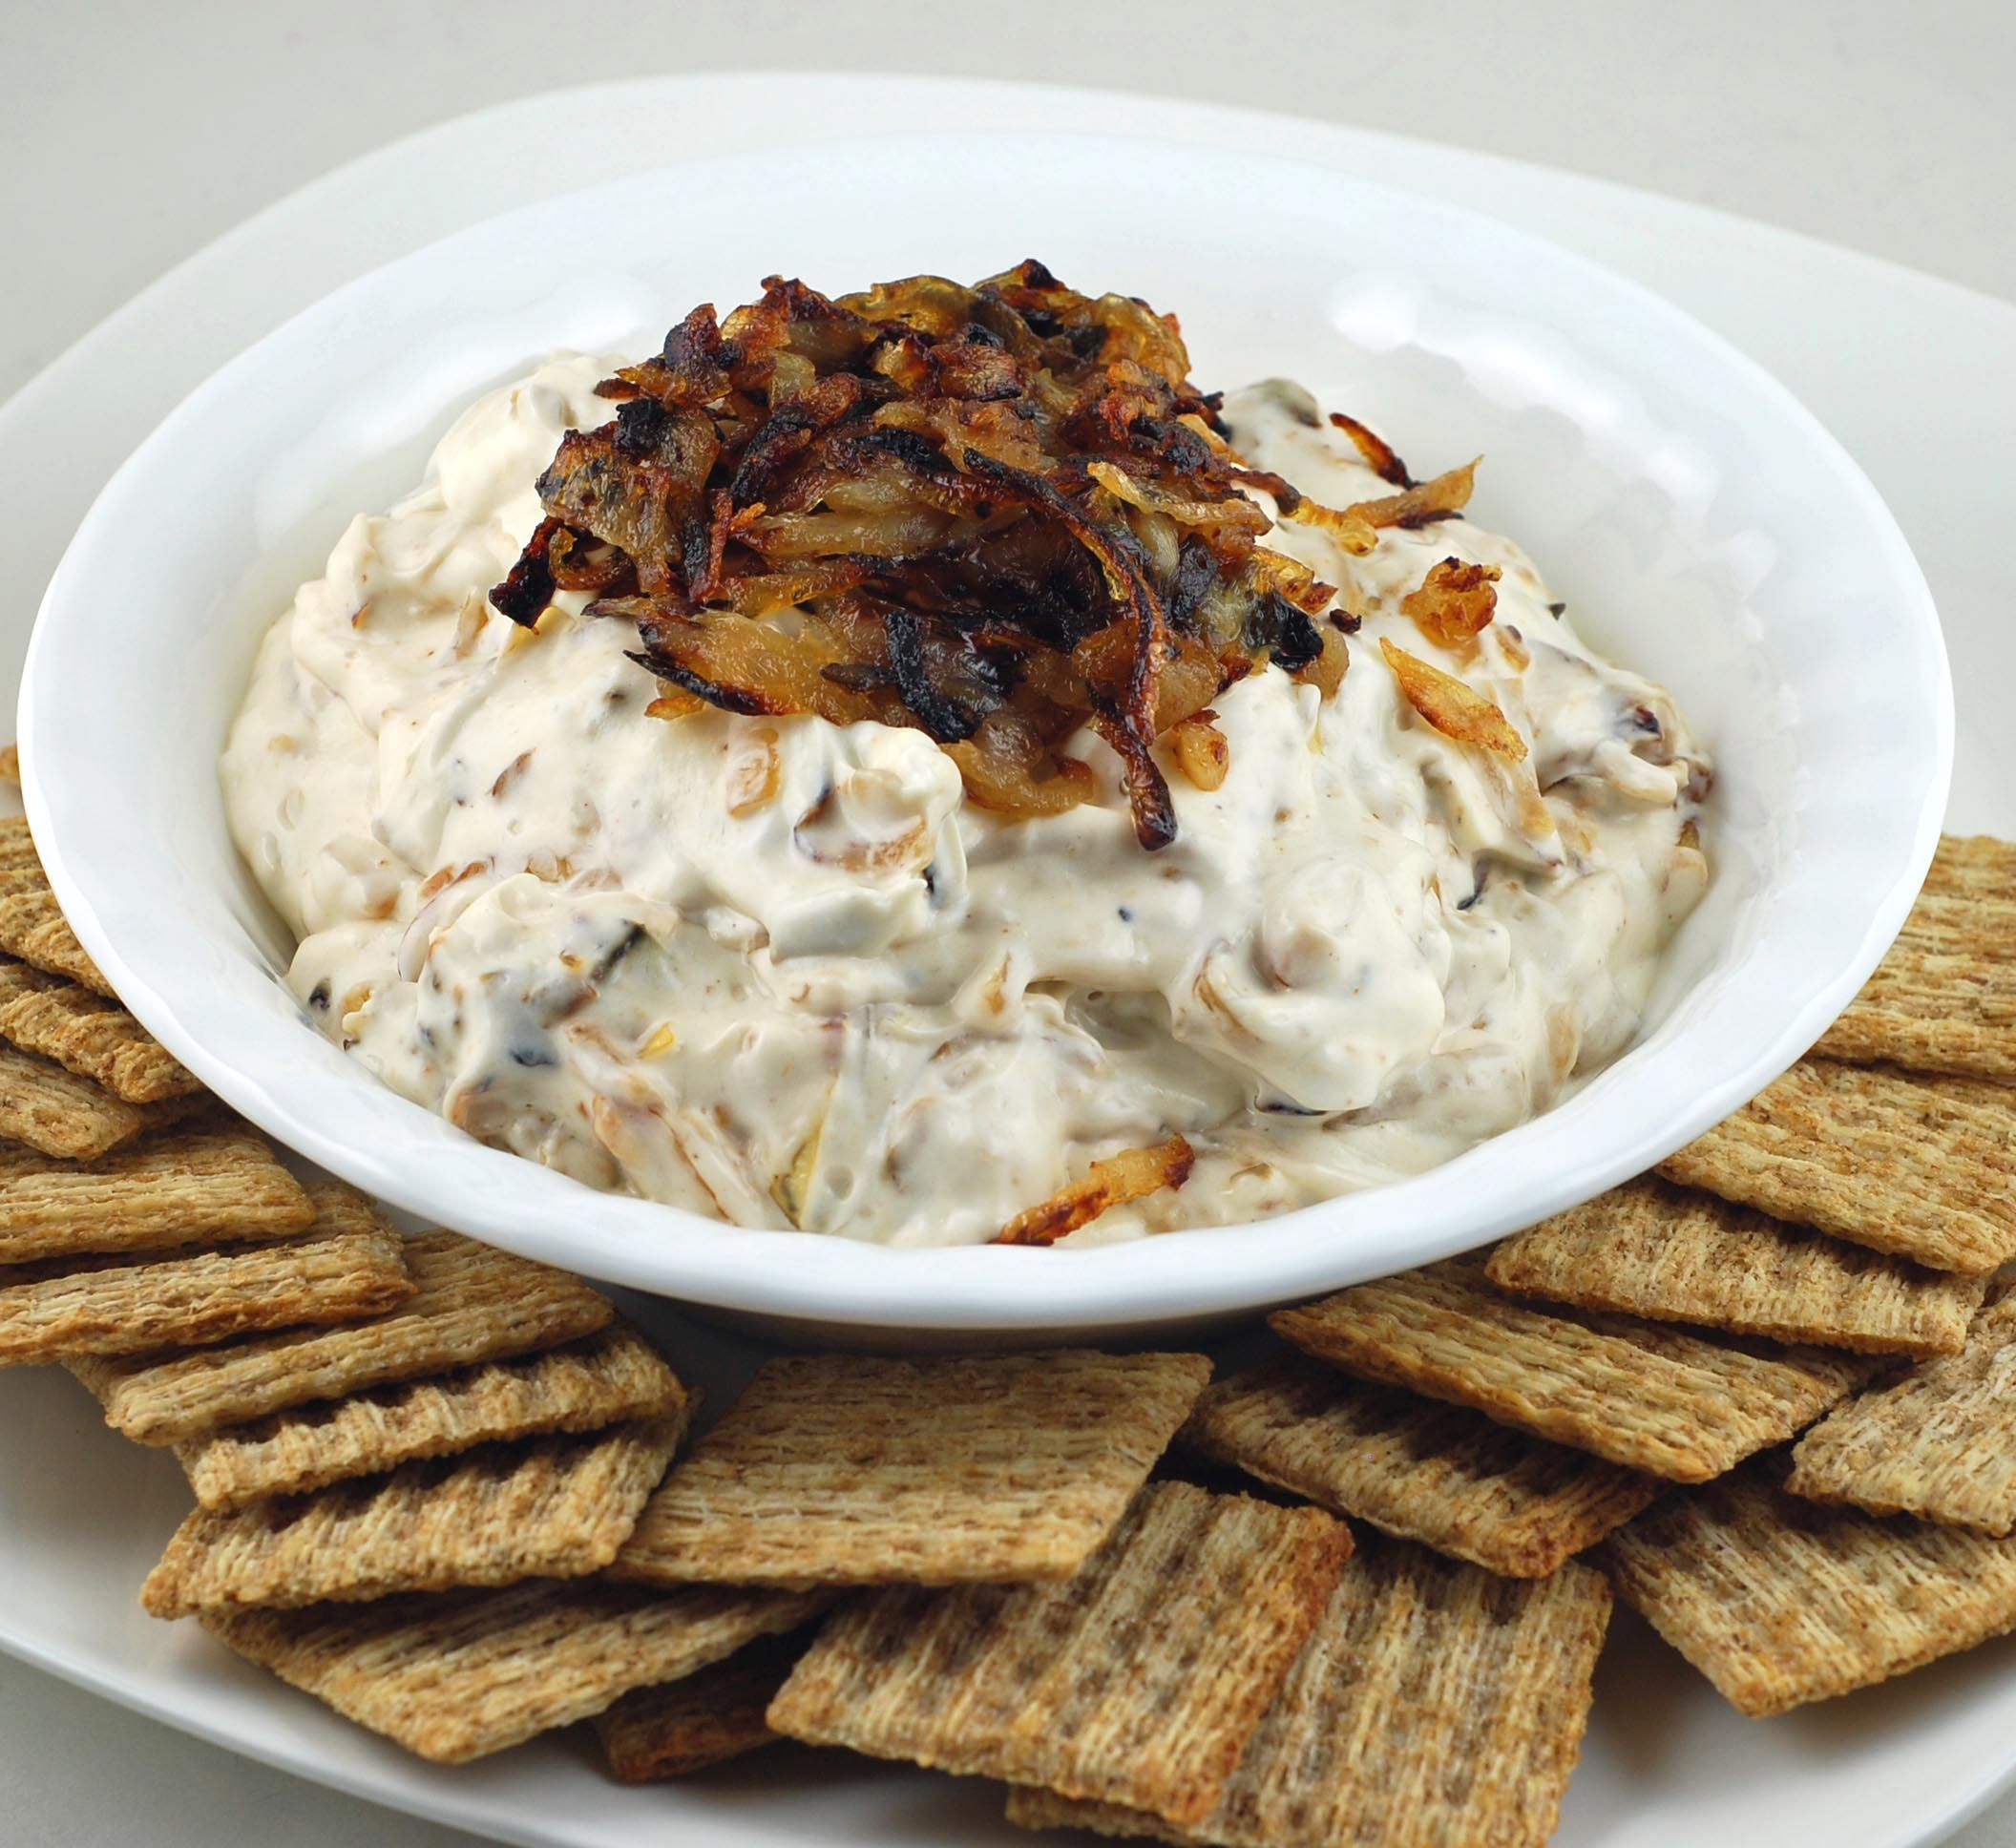 Barefoot Contessa's Pan Fried Onion Dip. Creamy And